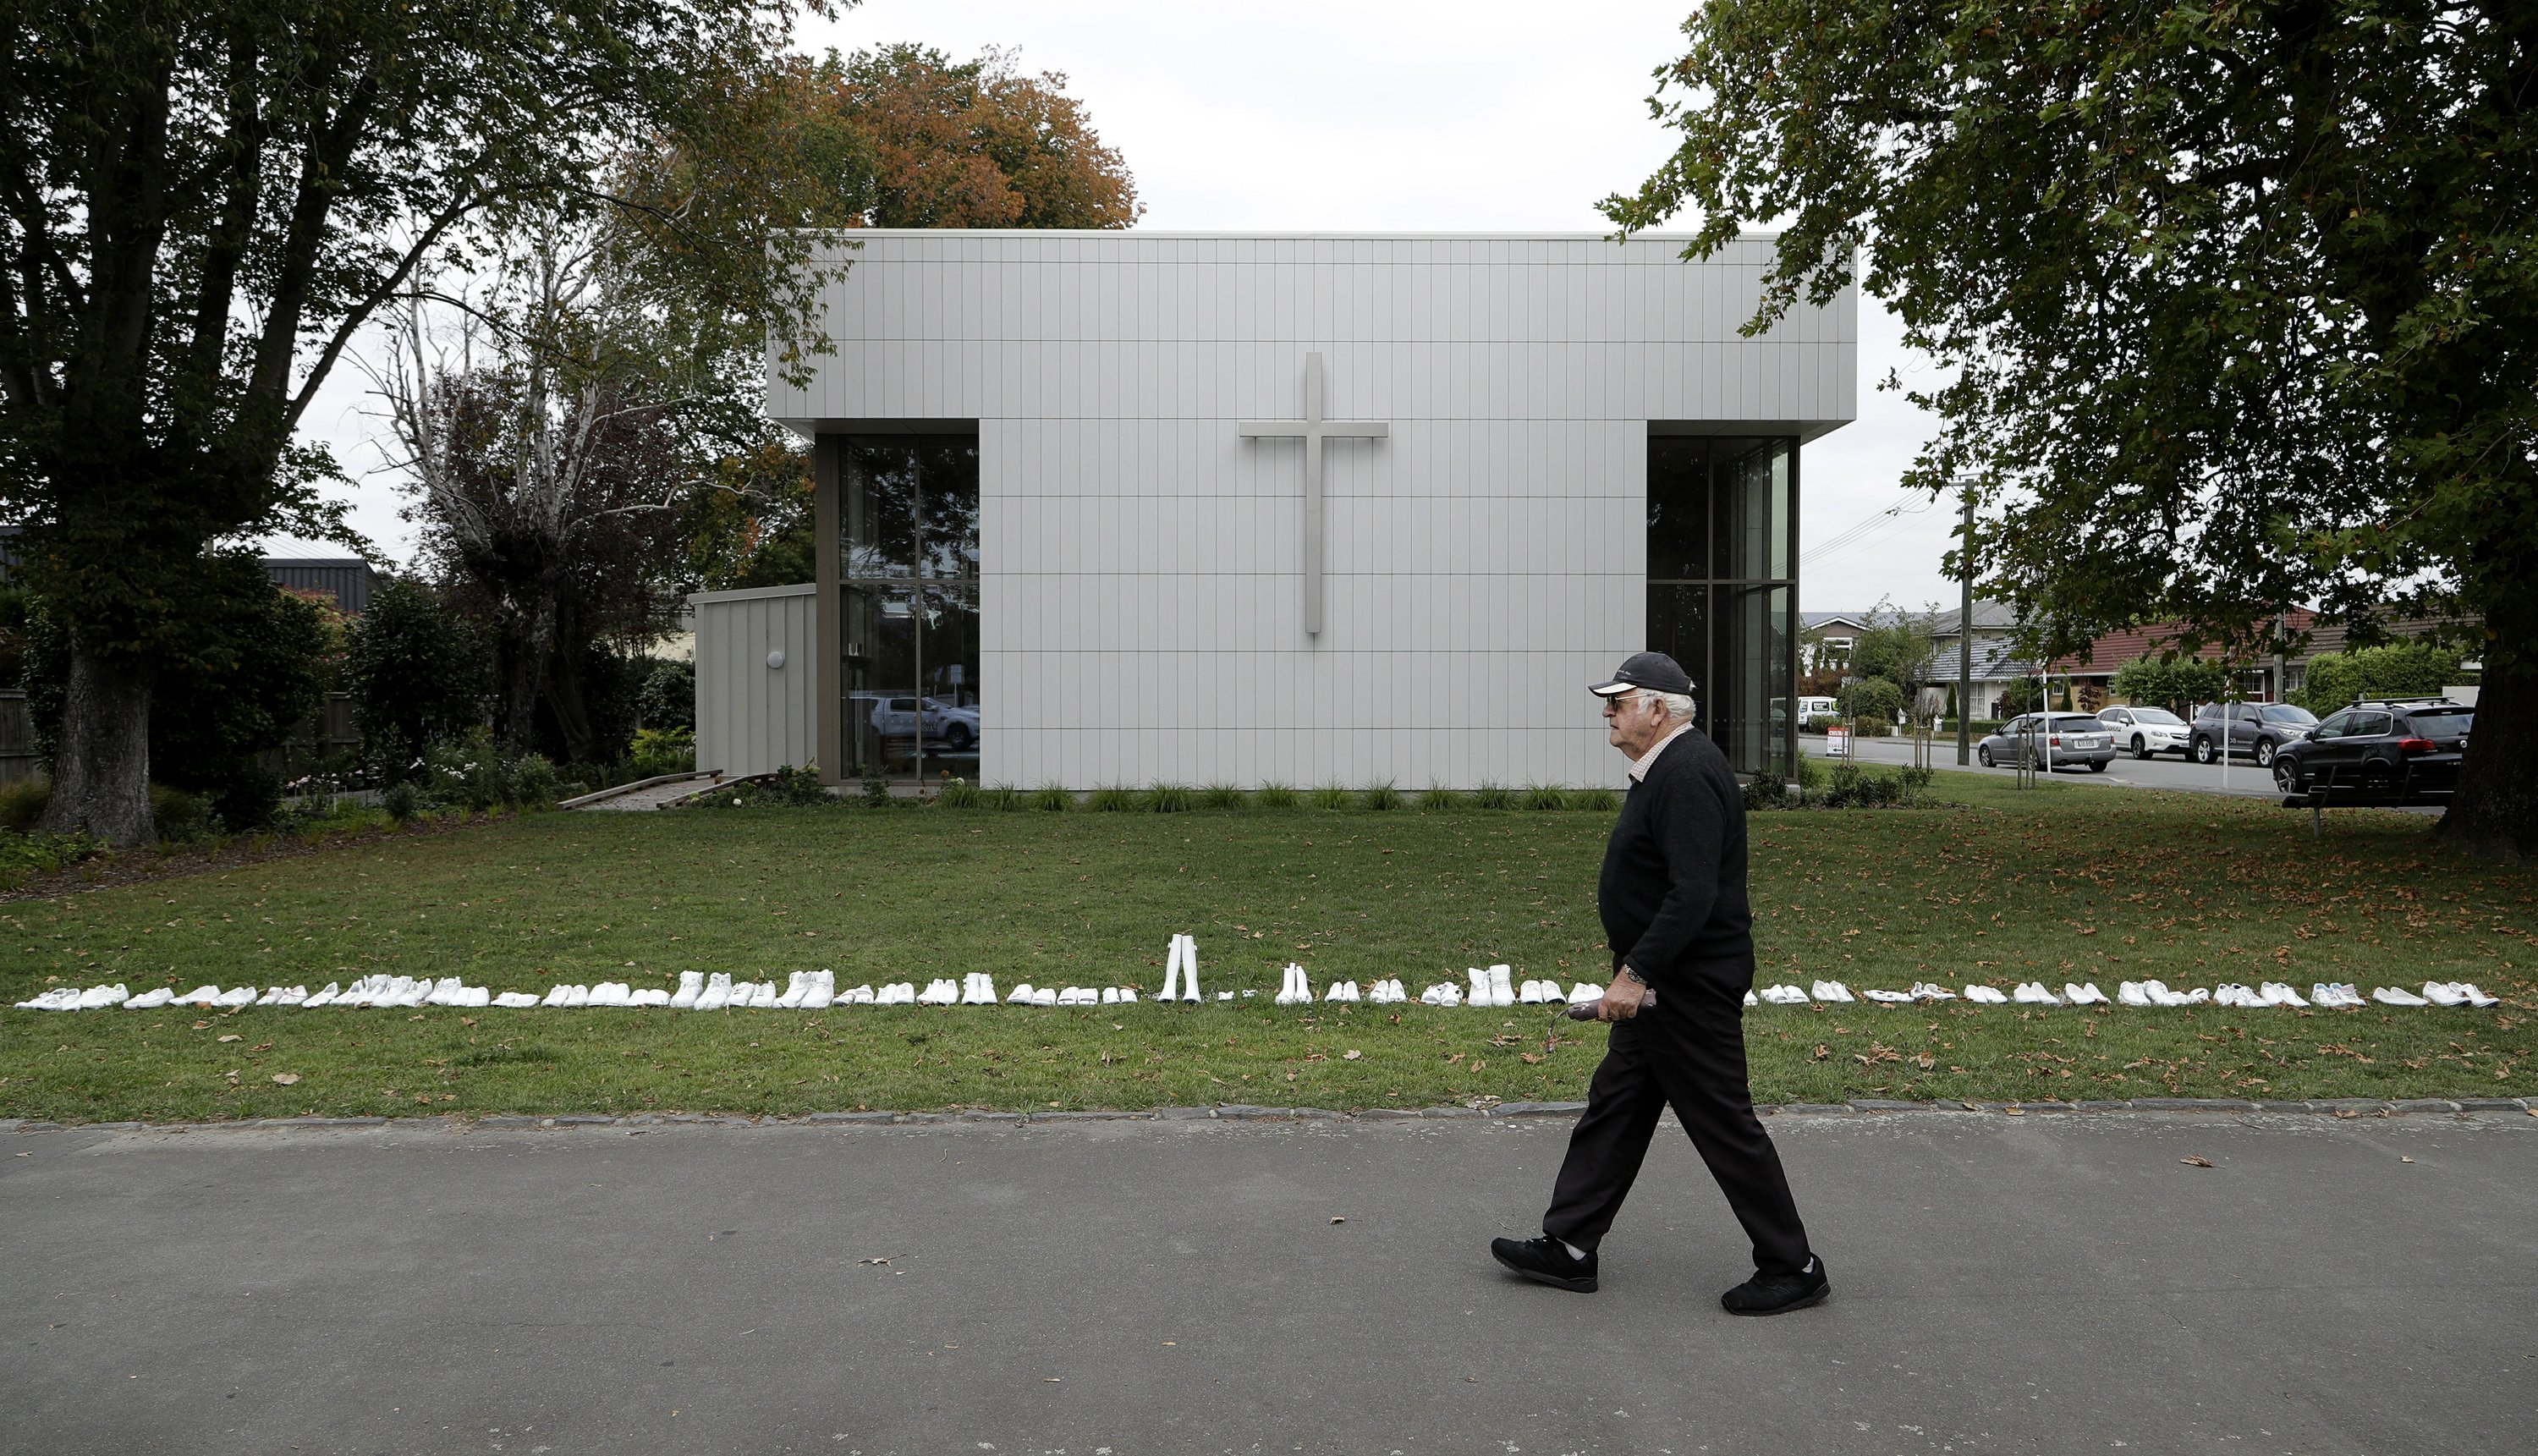 Christchurch gun shop sold rifles online to accused shooter